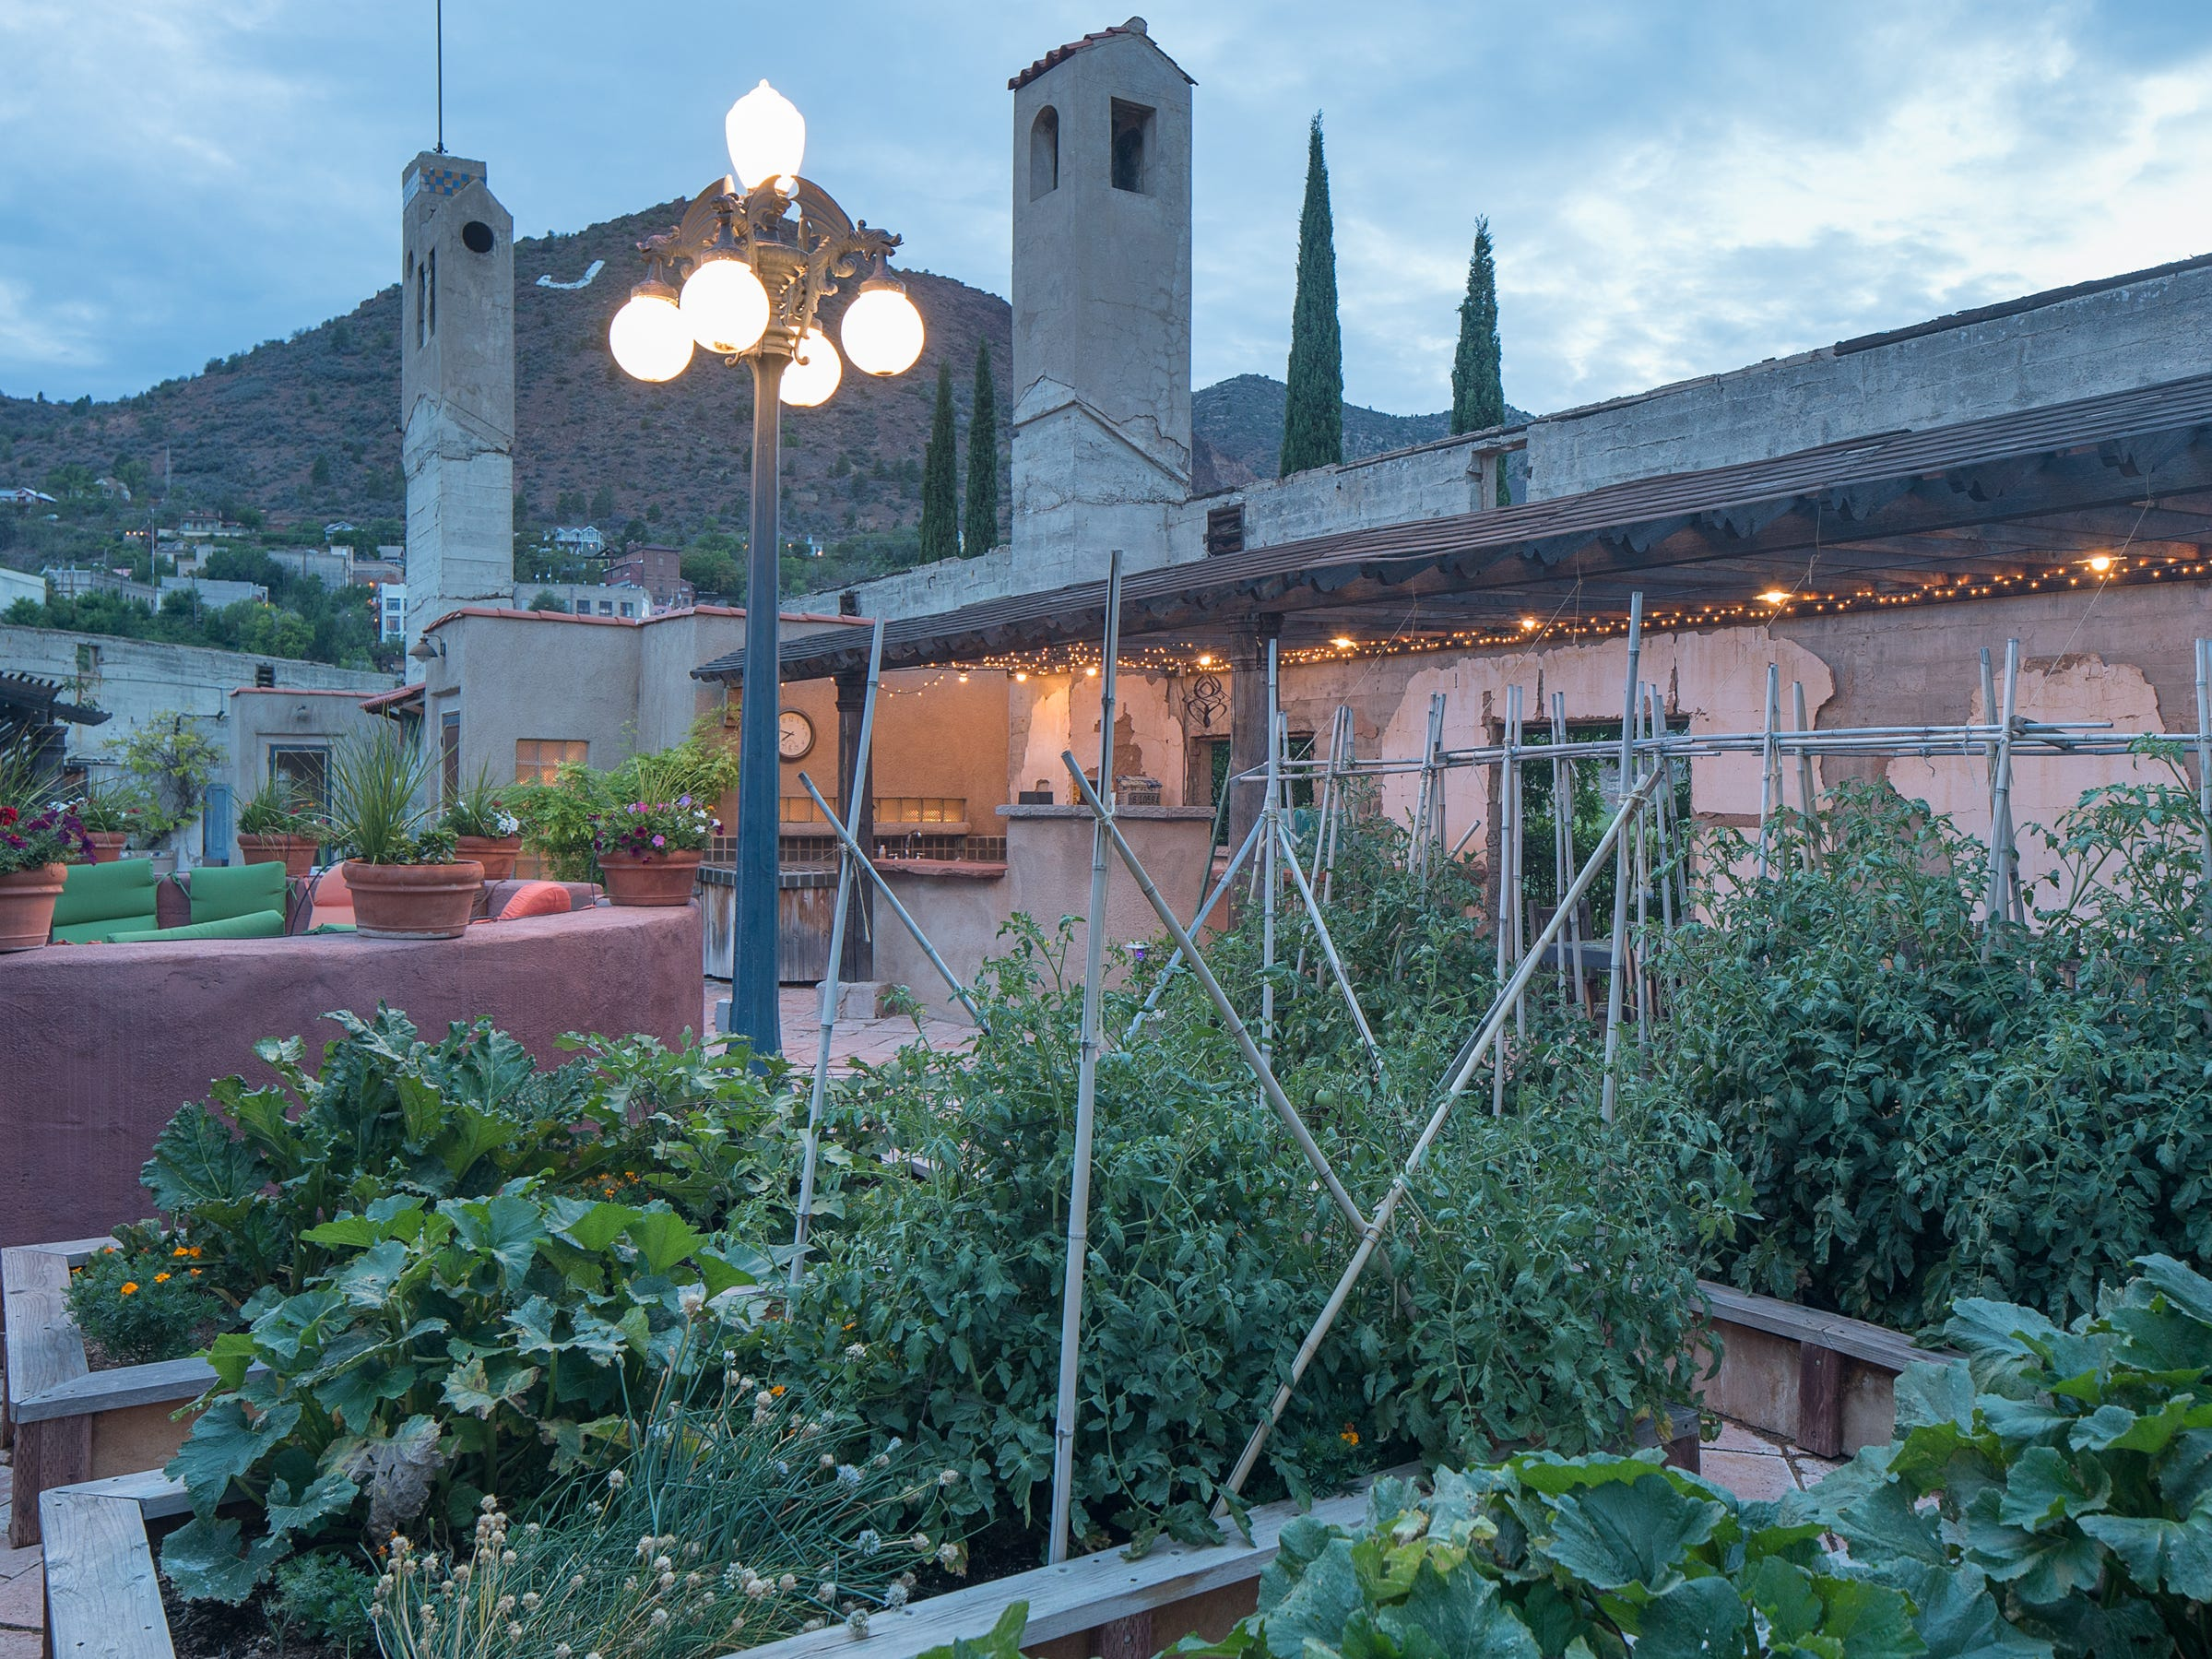 A rooftop garden is seen at dusk at the the 100-year-old former Little Daisy Hotel in Jerome, which was later turned into a single-family home and is now on the market.